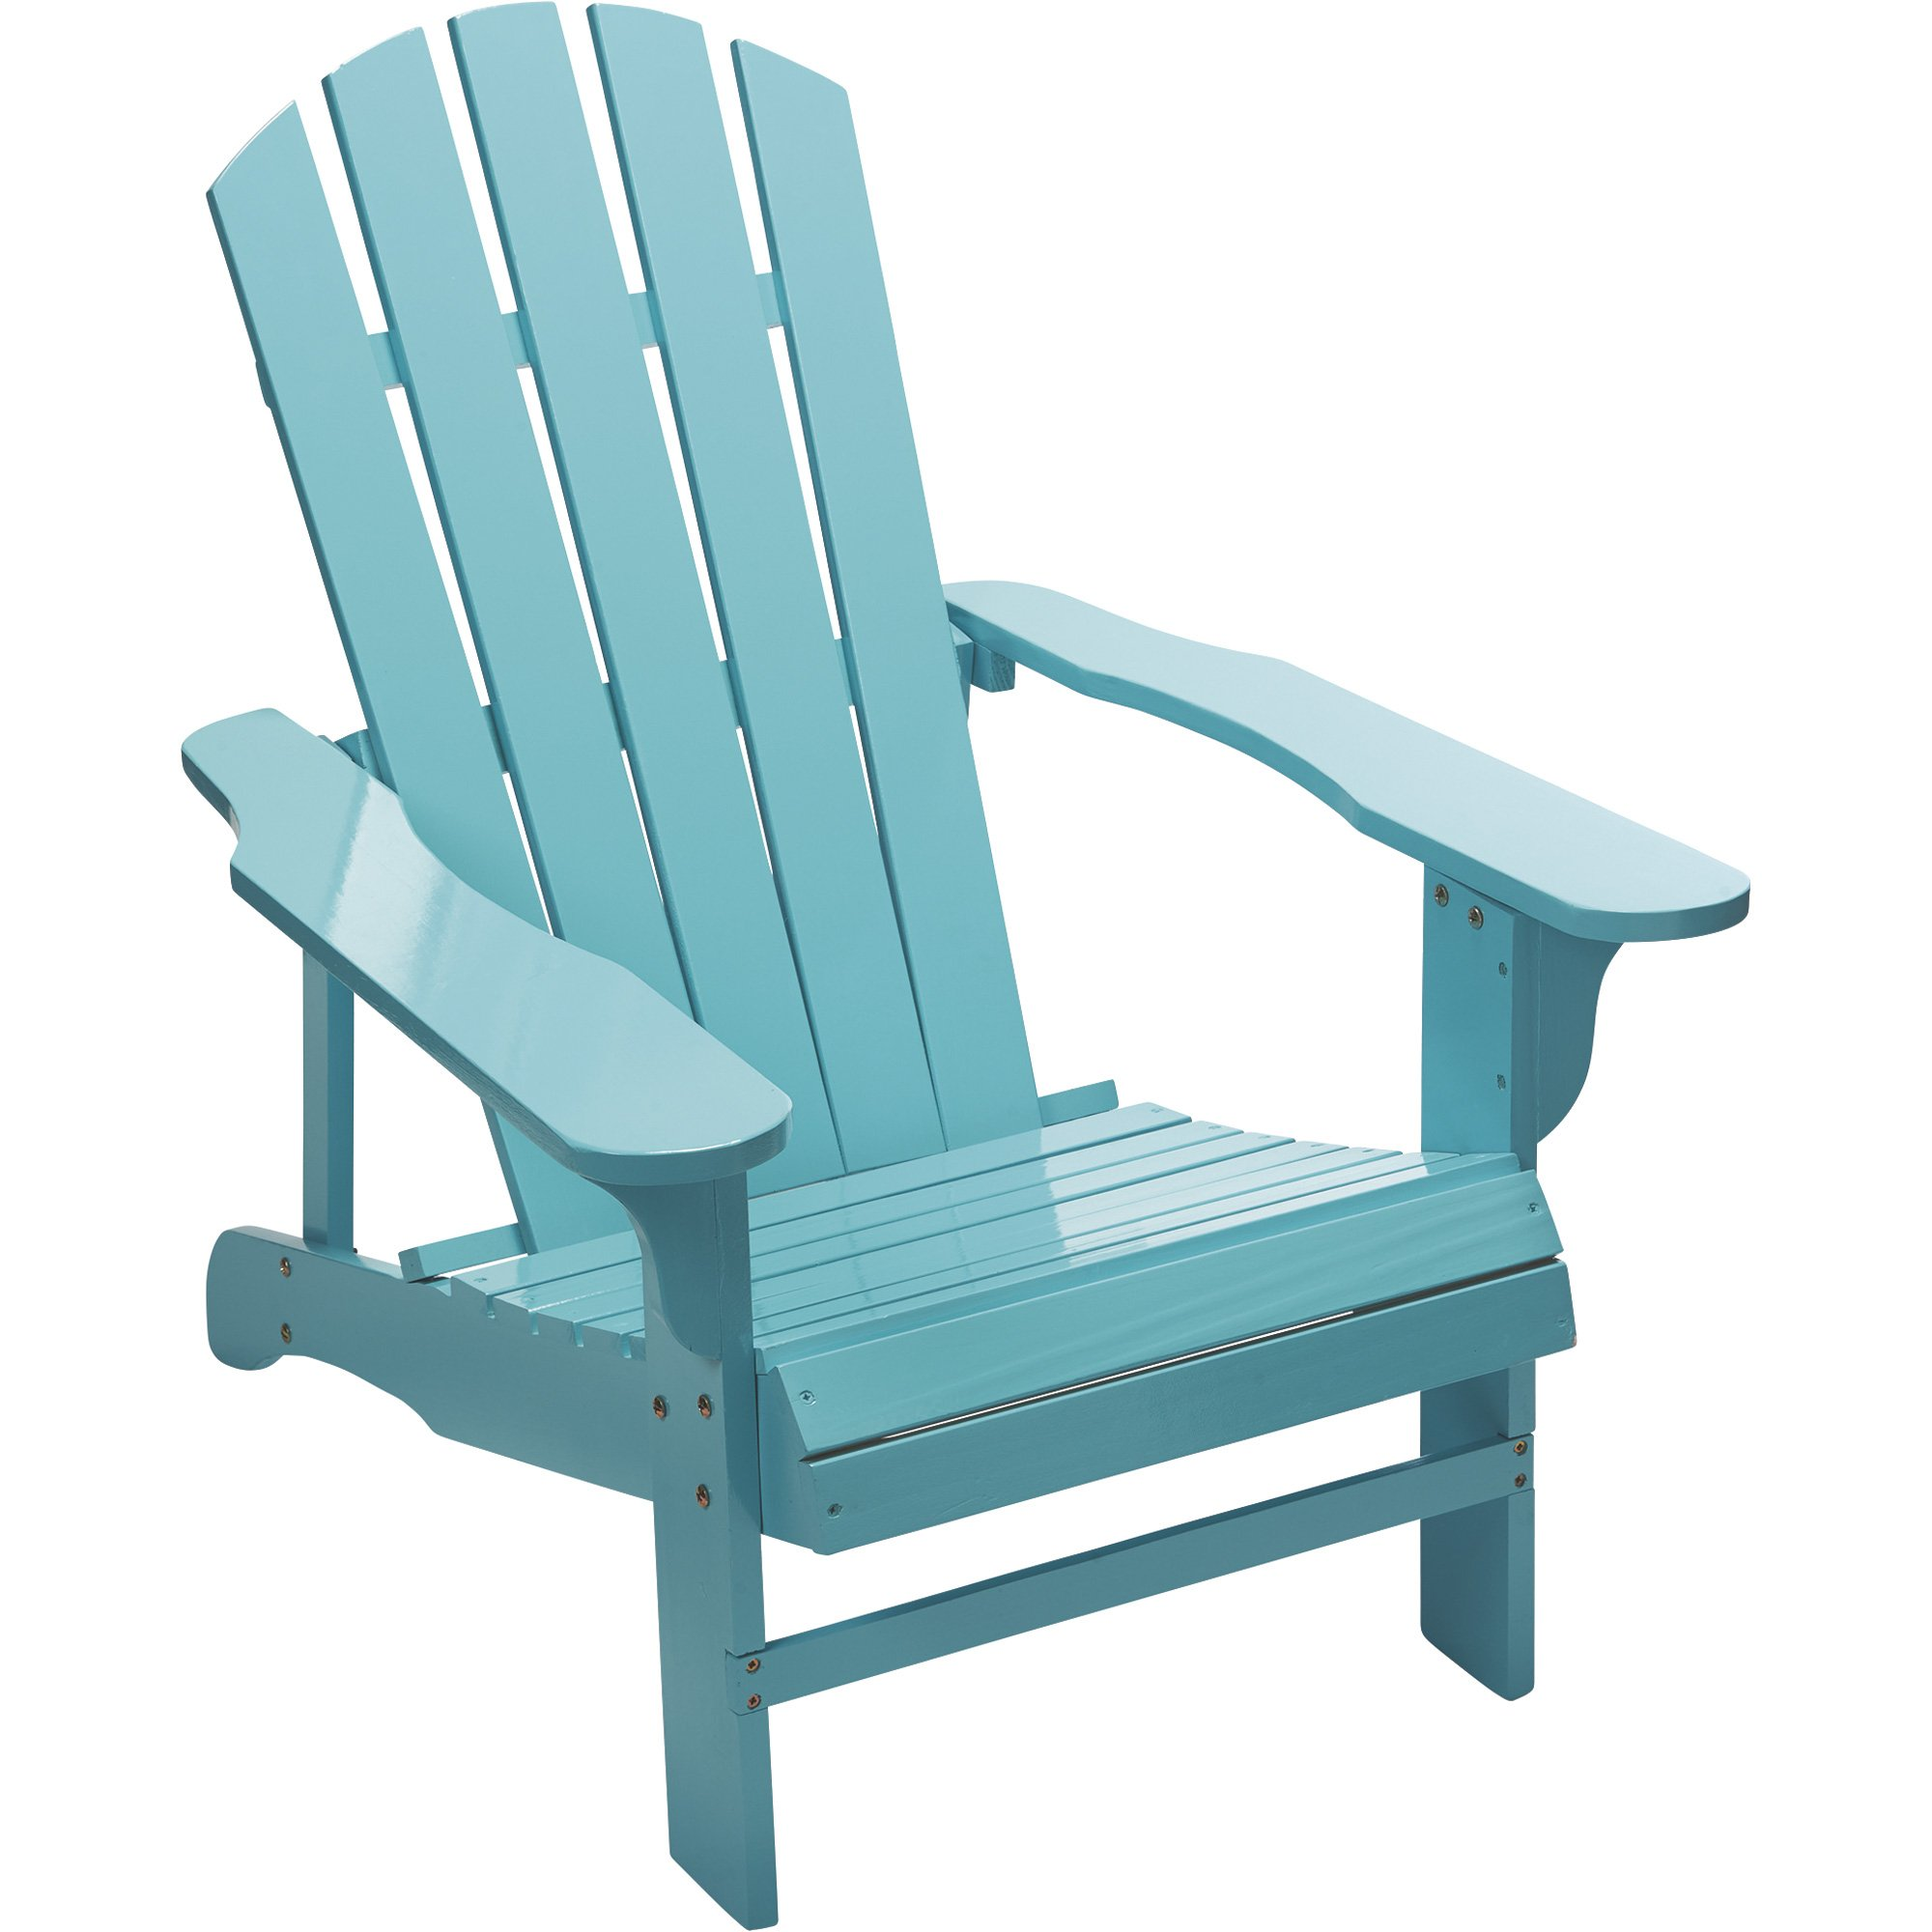 Leigh Country Classic Turquoise Painted Wood Adirondack Chair by Leigh Country